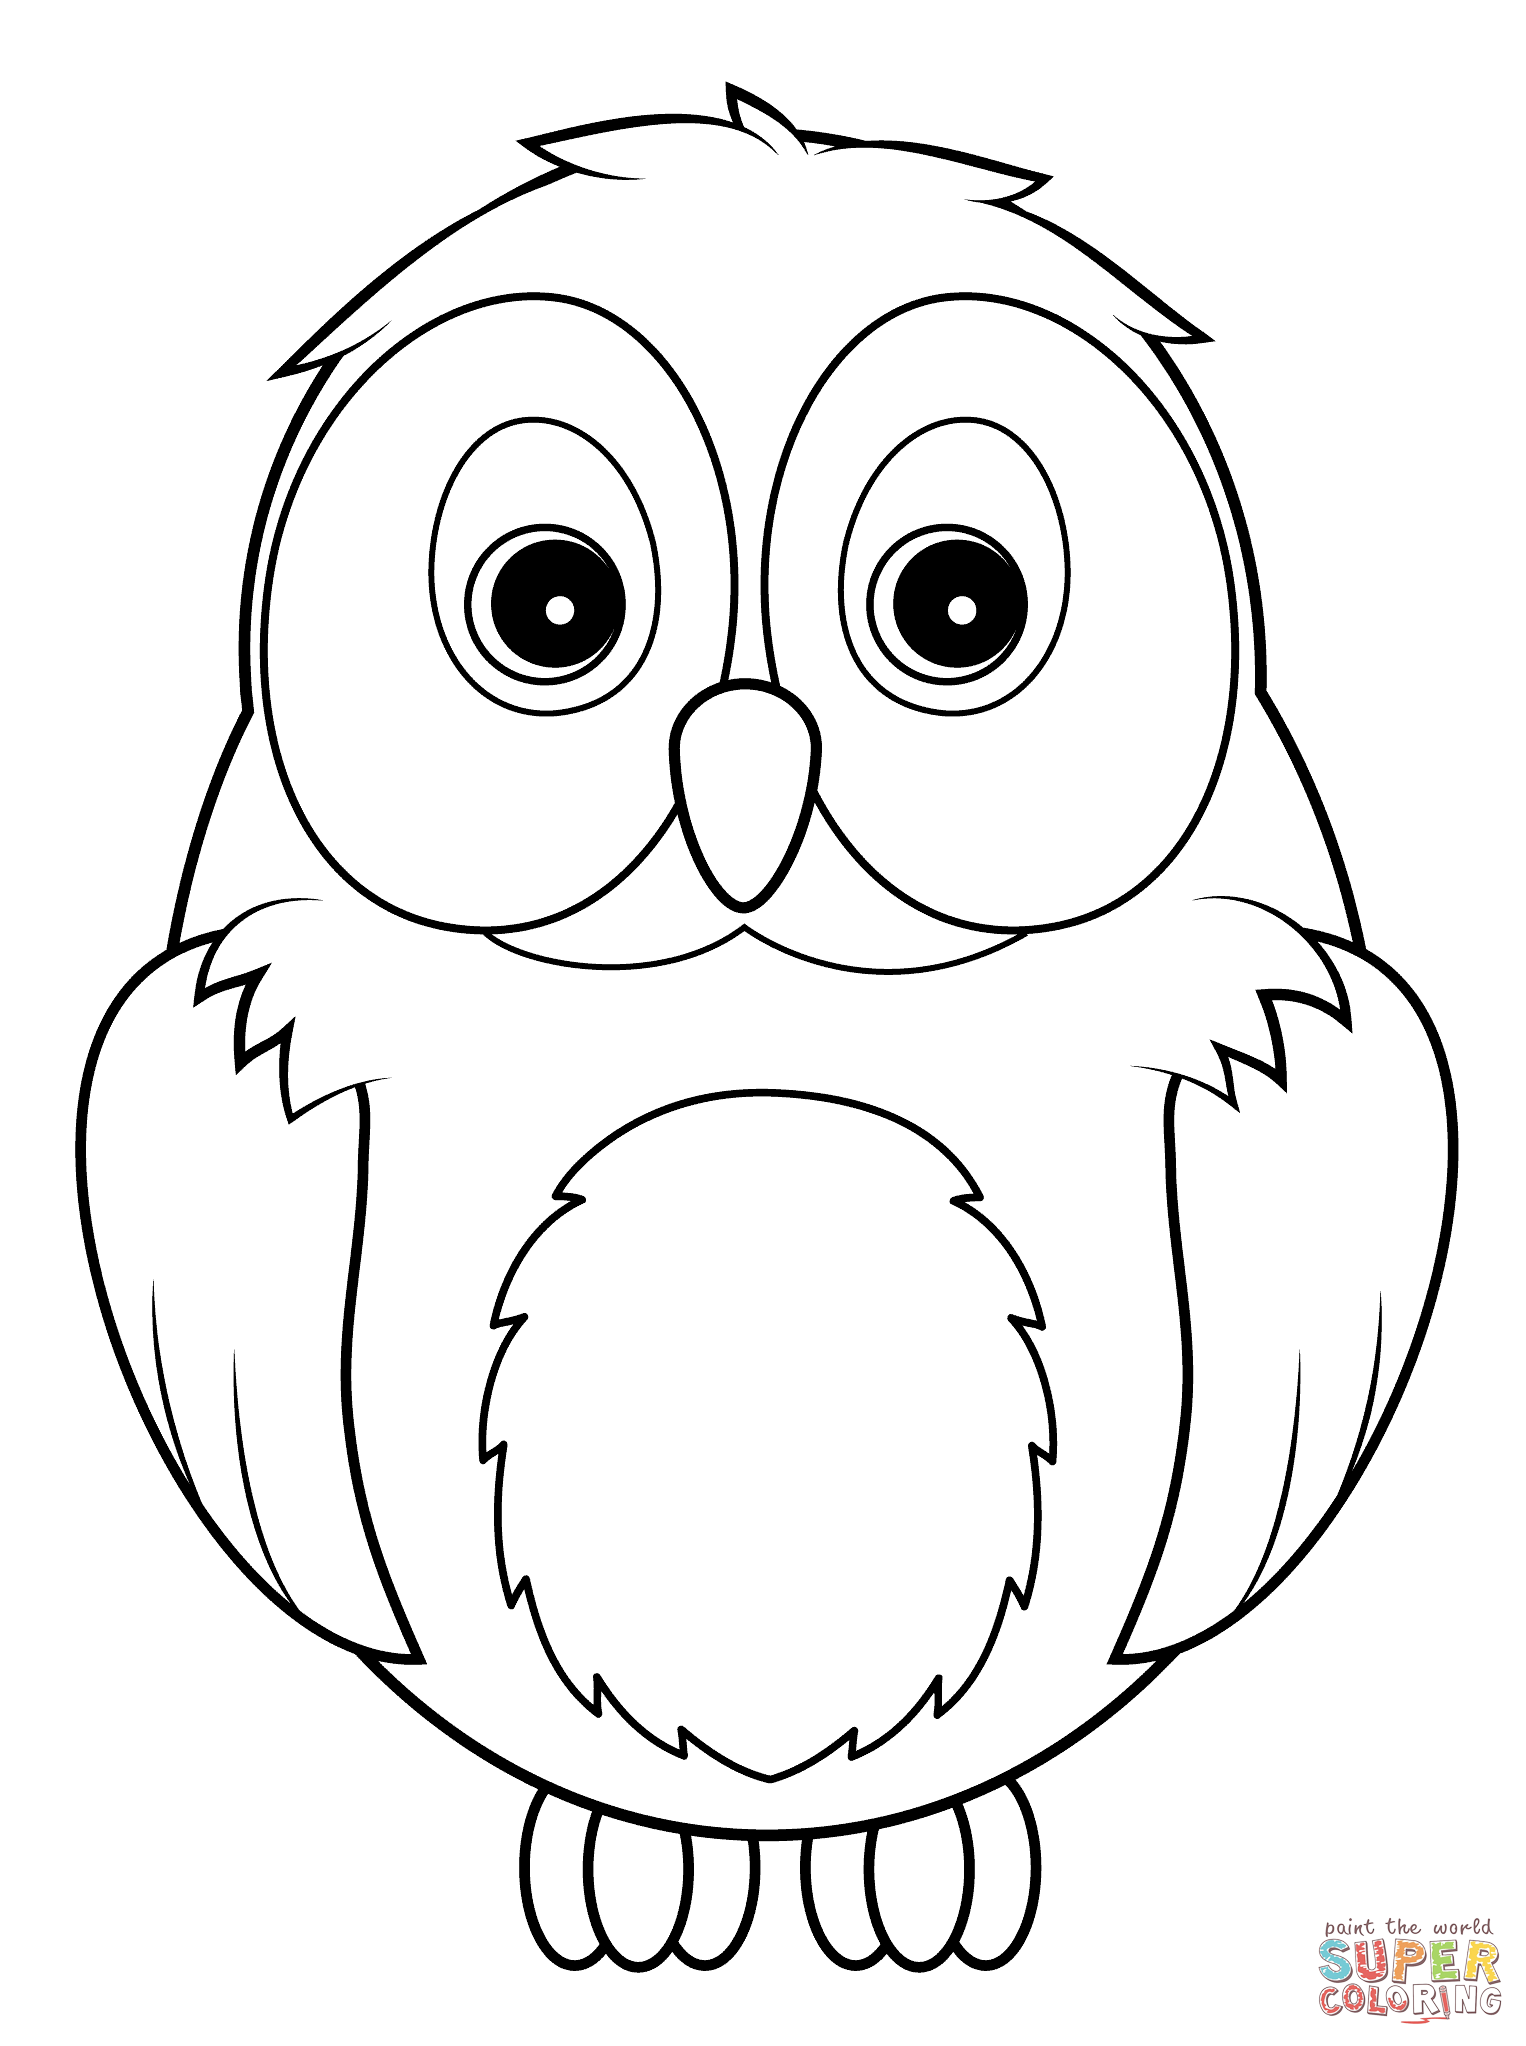 owl coloring page printable owl coloring pages owl coloring pages owl coloring page printable